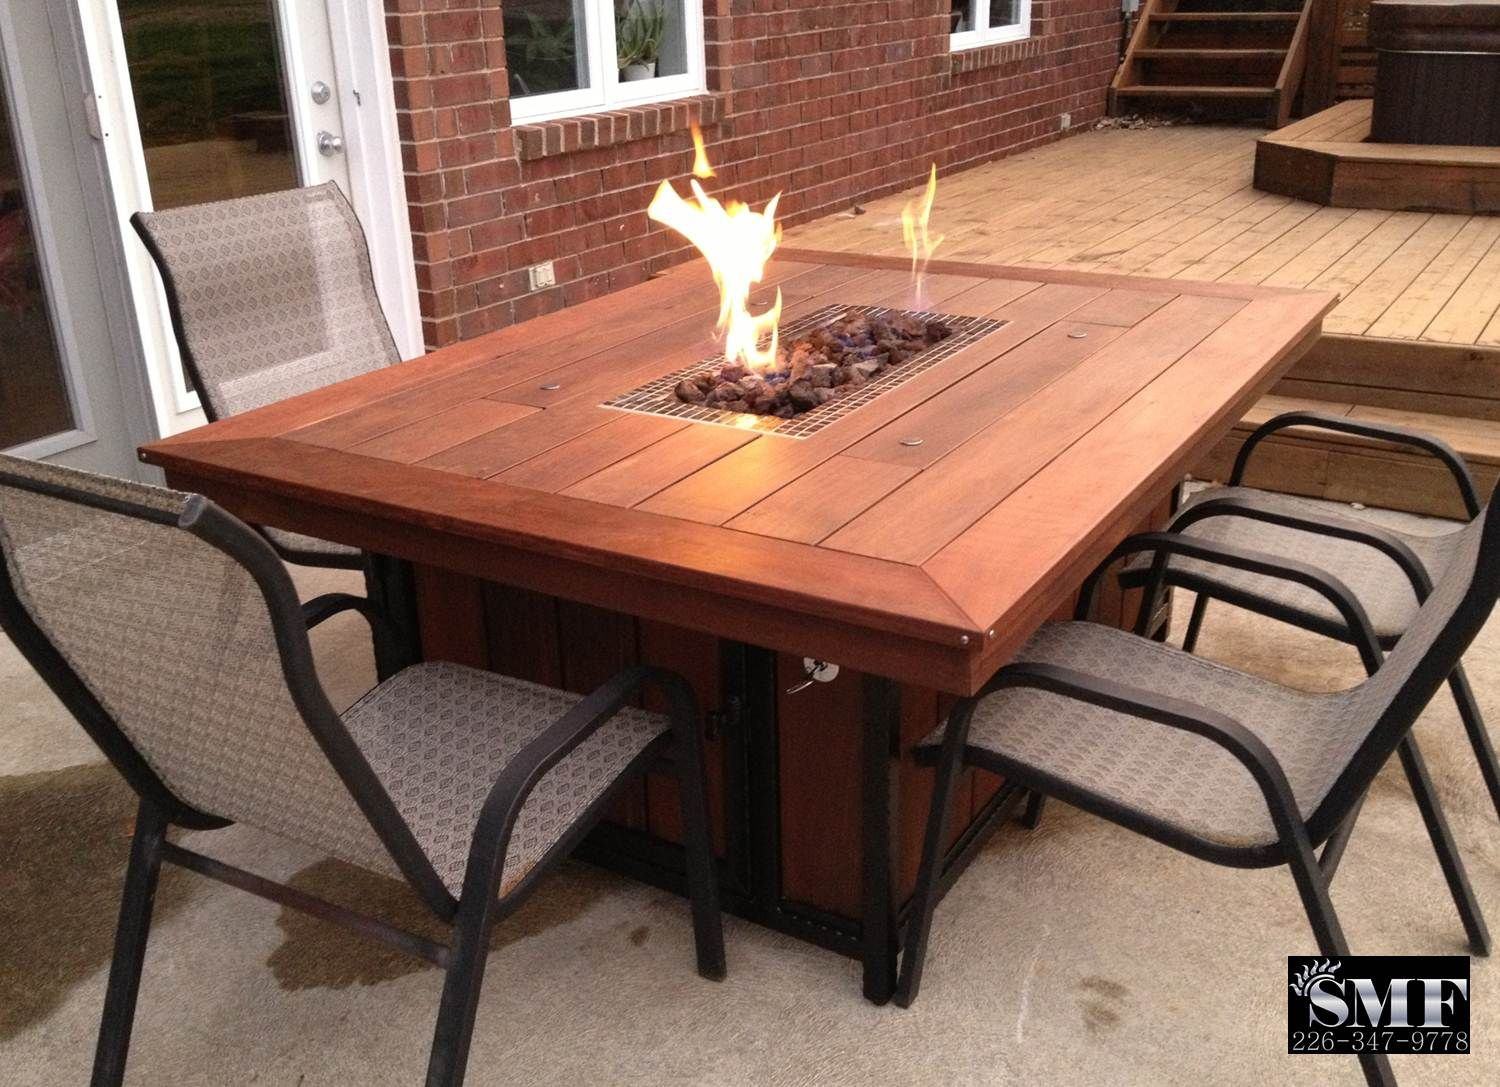 Posts About Fire Tables On Sunset Metal Fab Propane Fire Pit Table Fire Pit Table Fire Pit Table Top